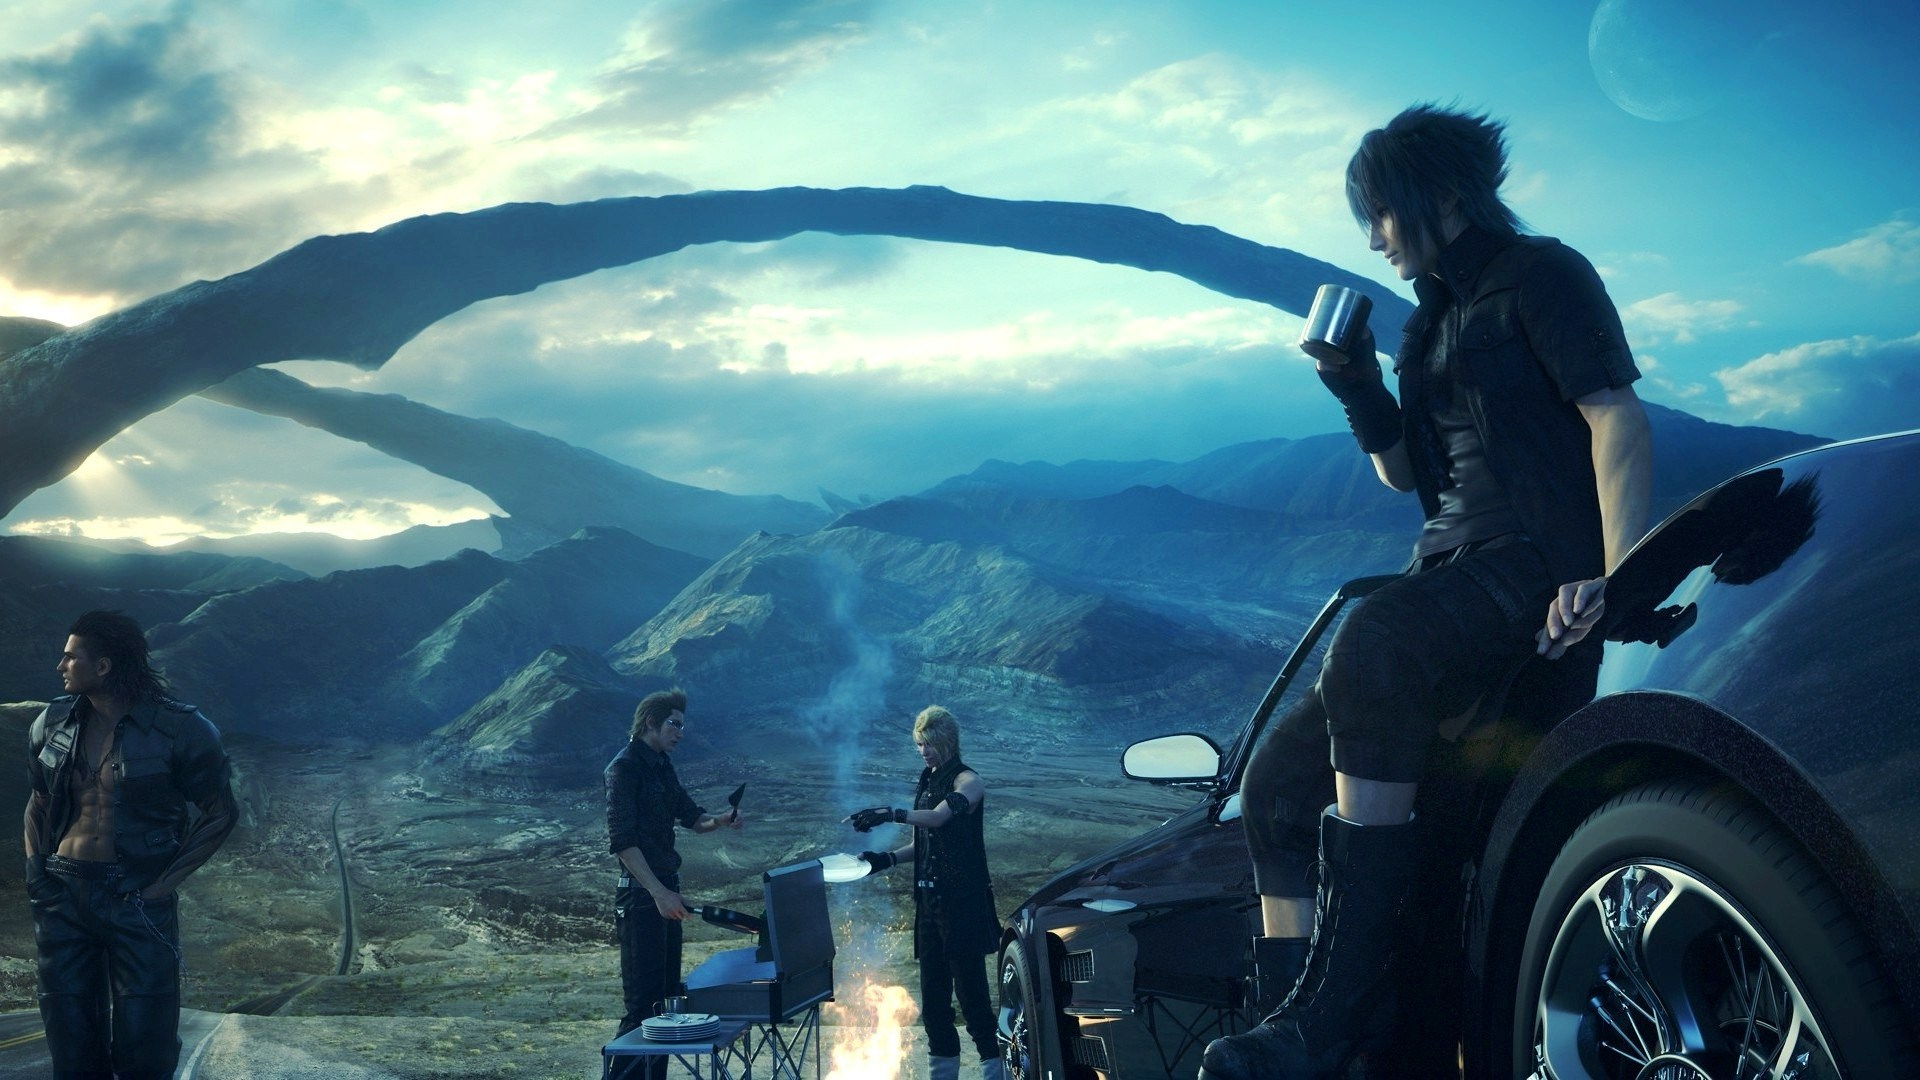 Final Fantasy XV Episode Prompto Comes Out Next Week